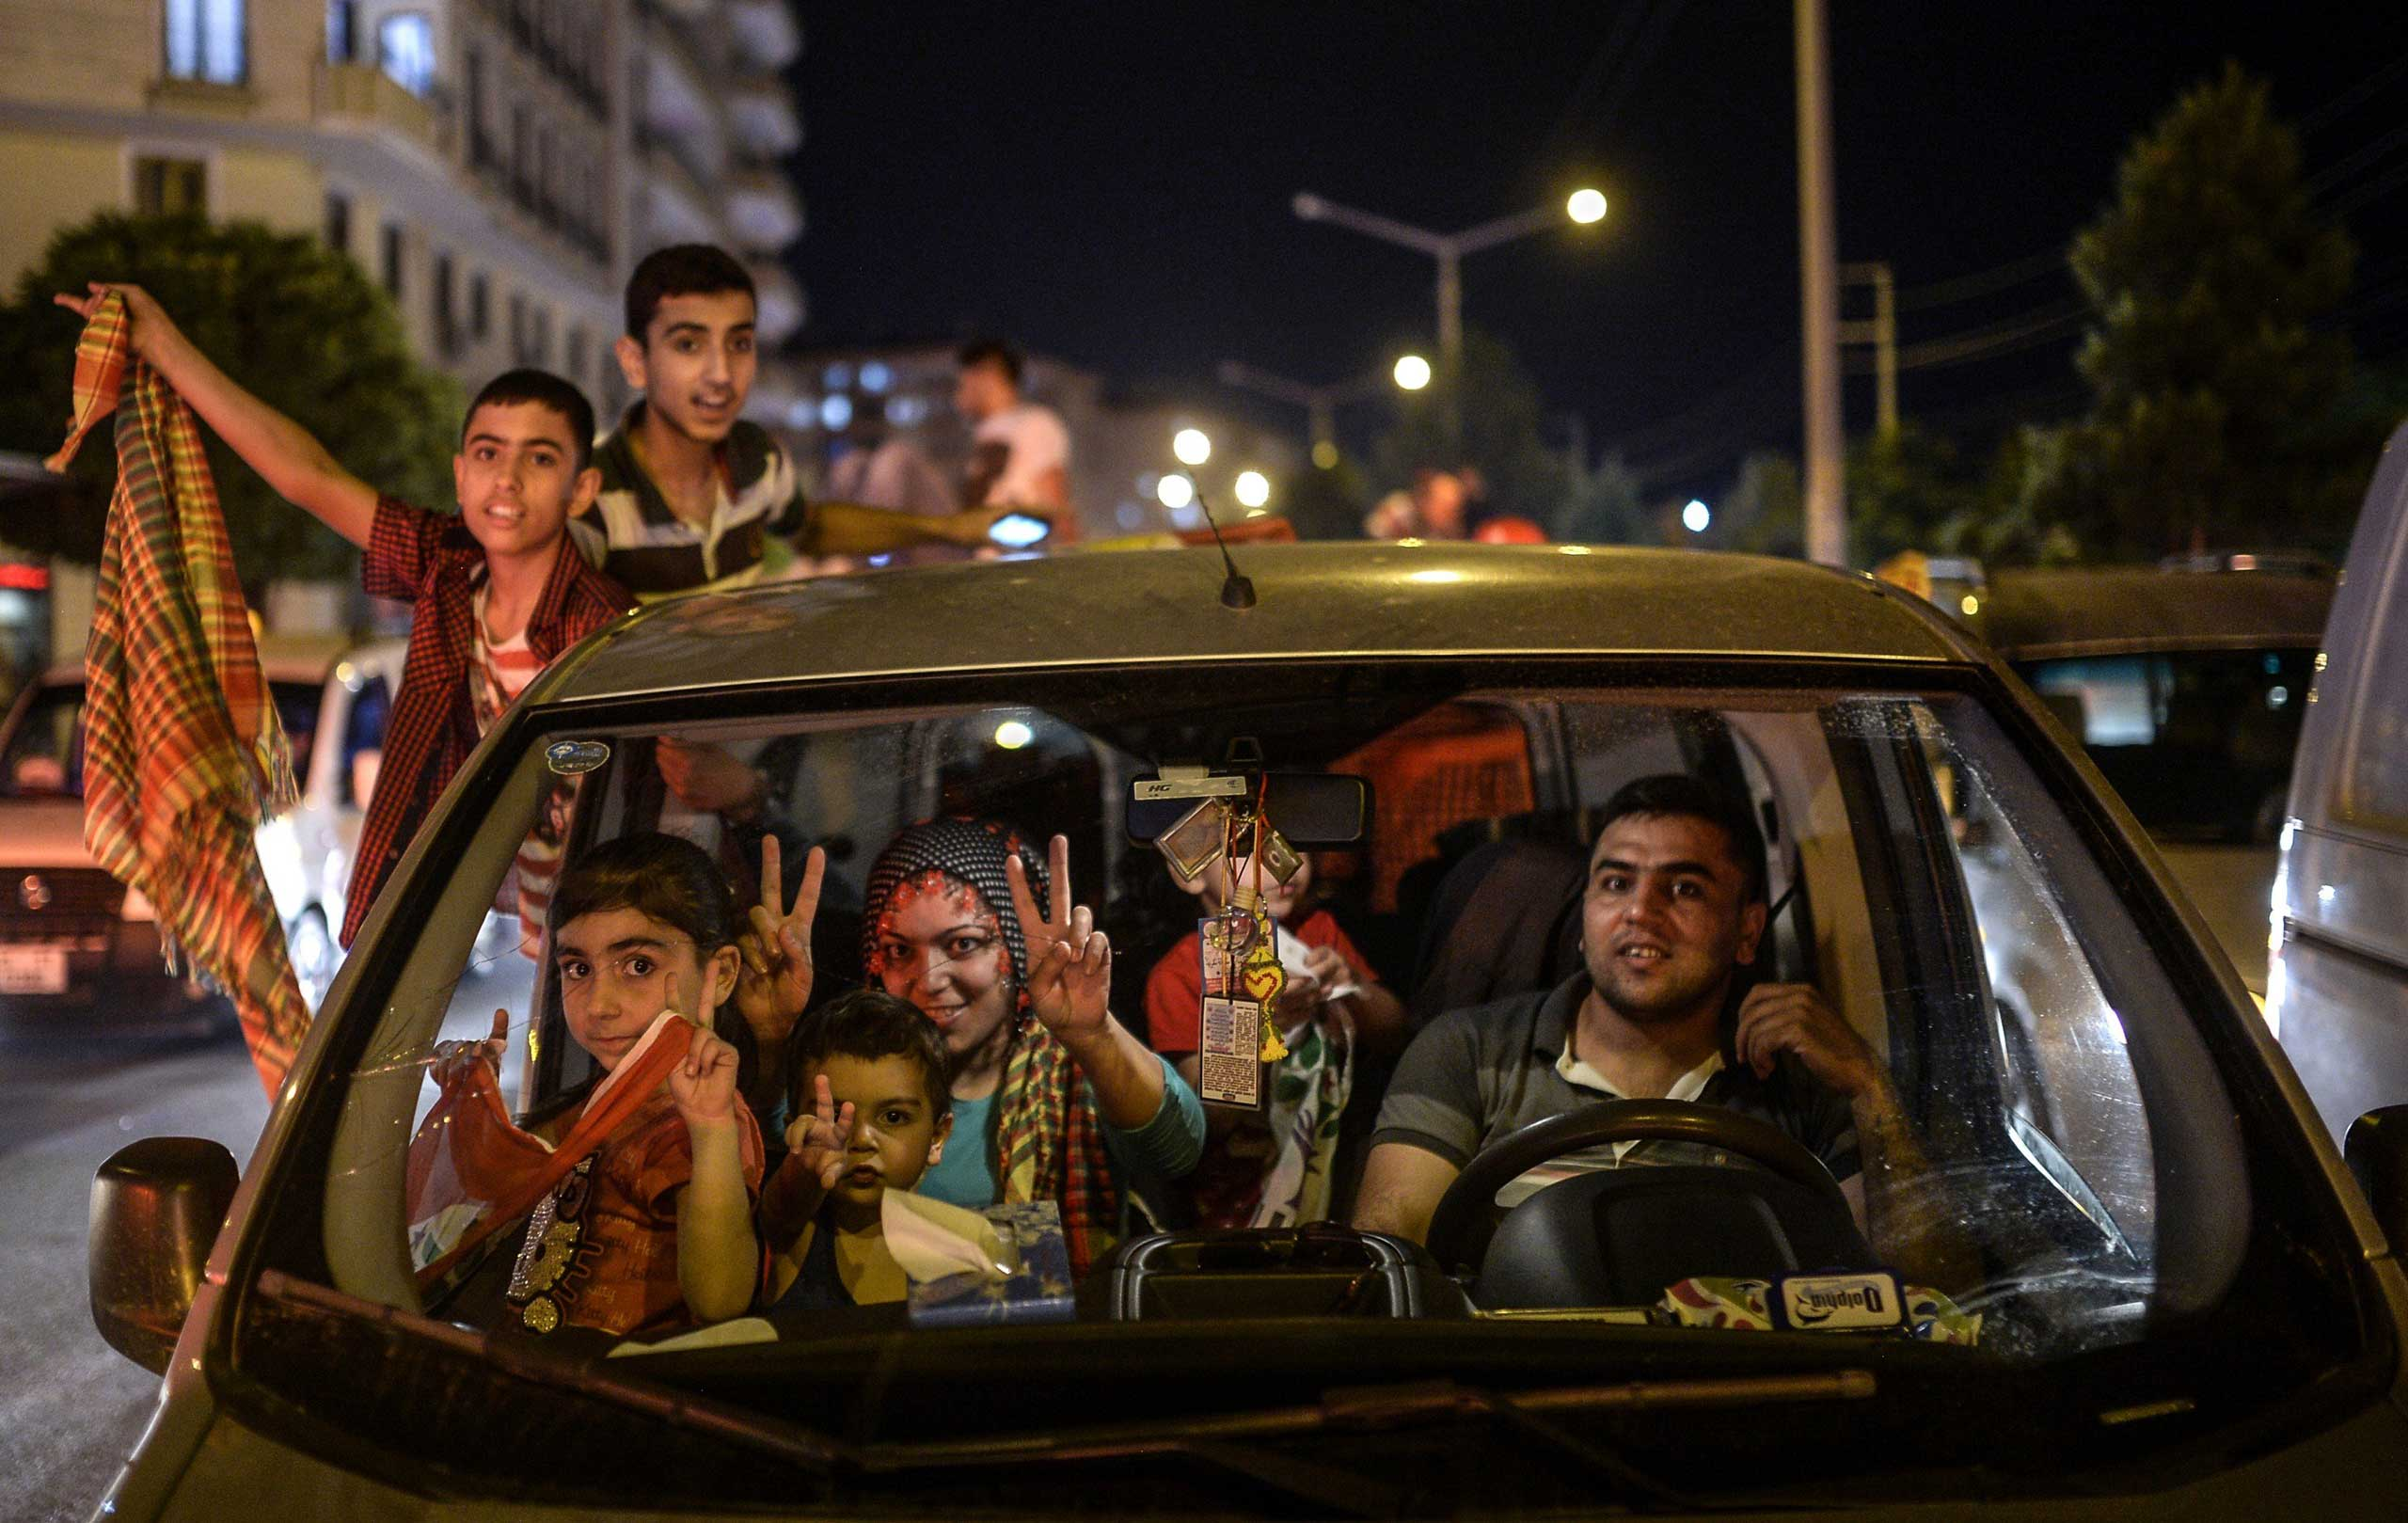 A family and children, supporters of pro-Kurdish Peoples' Democratic Party (HDP) celebrate the results of the legislative election, in Diyarbakir, Turkey, on June 7, 2015.